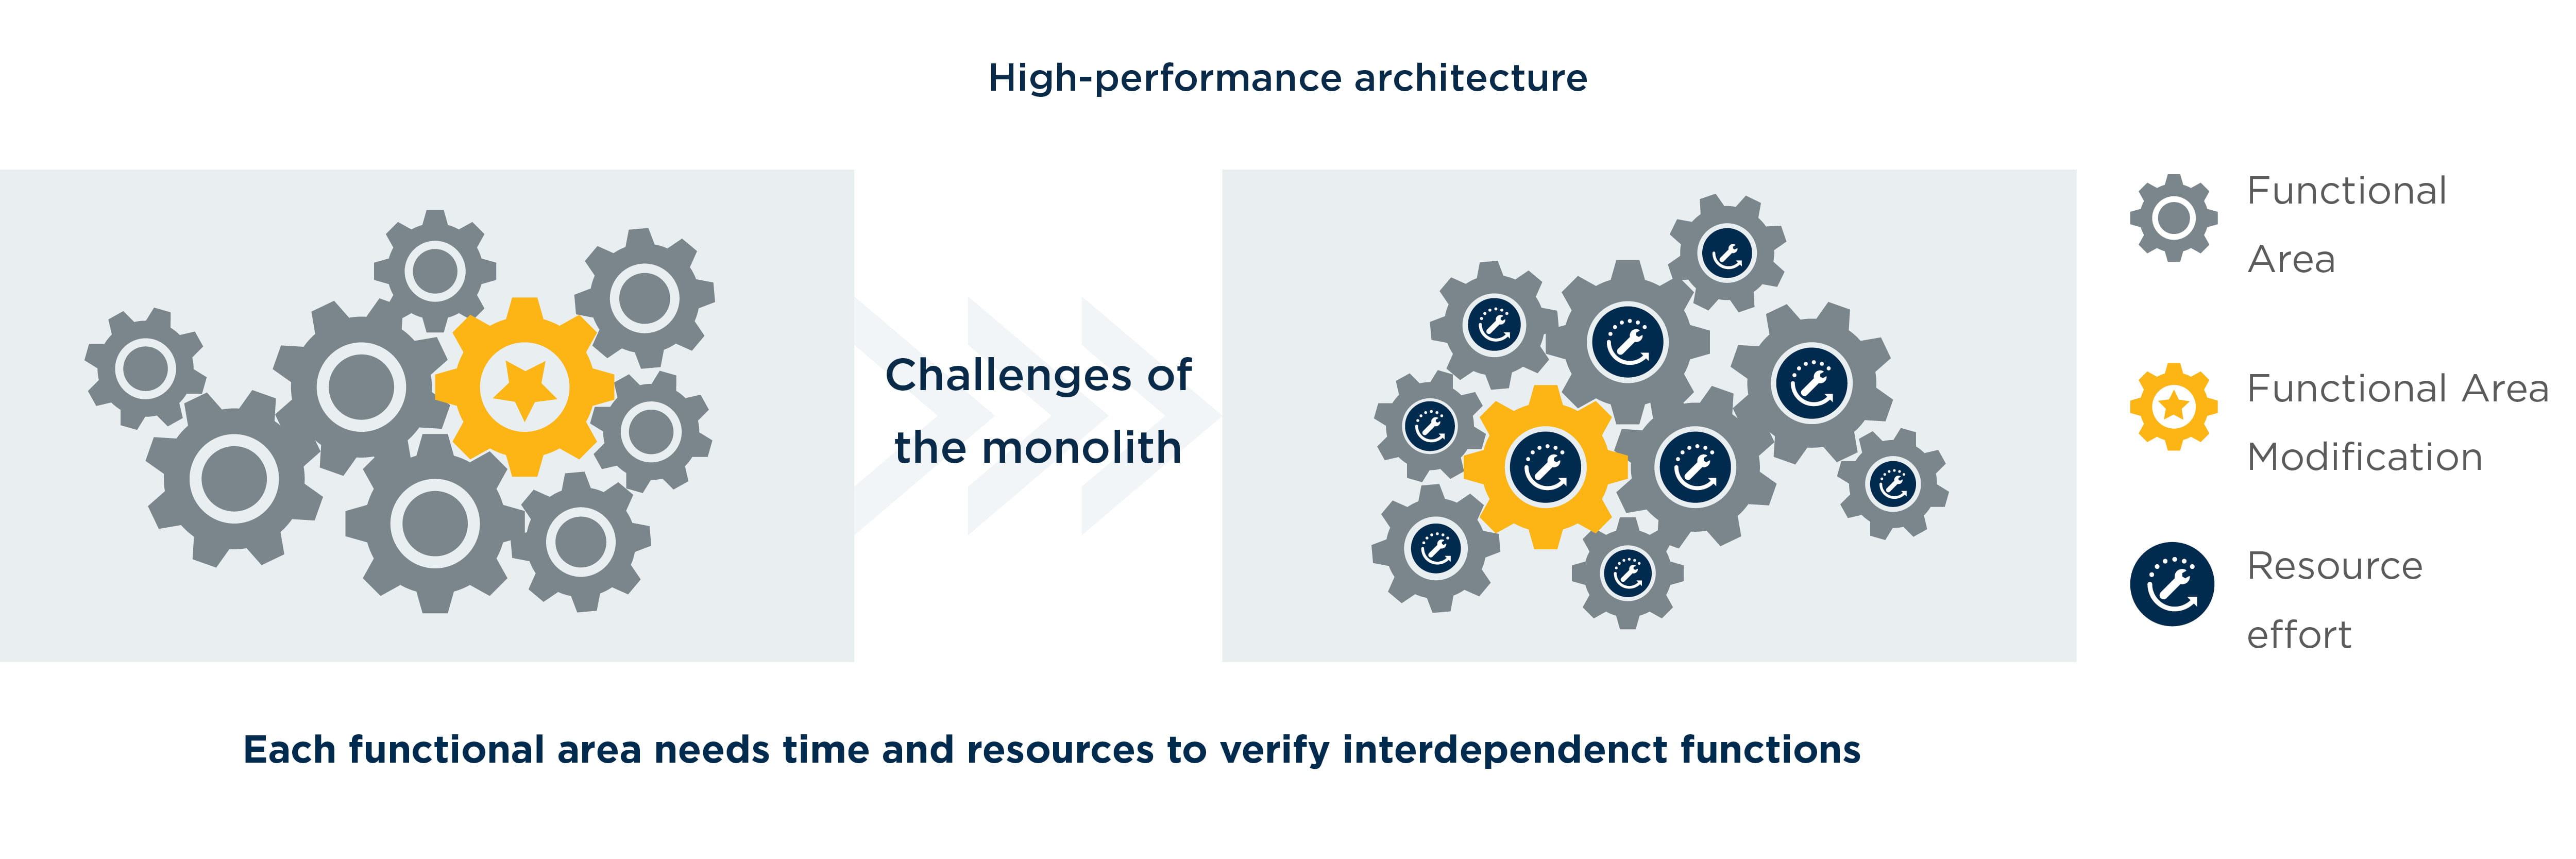 high-performance architecture